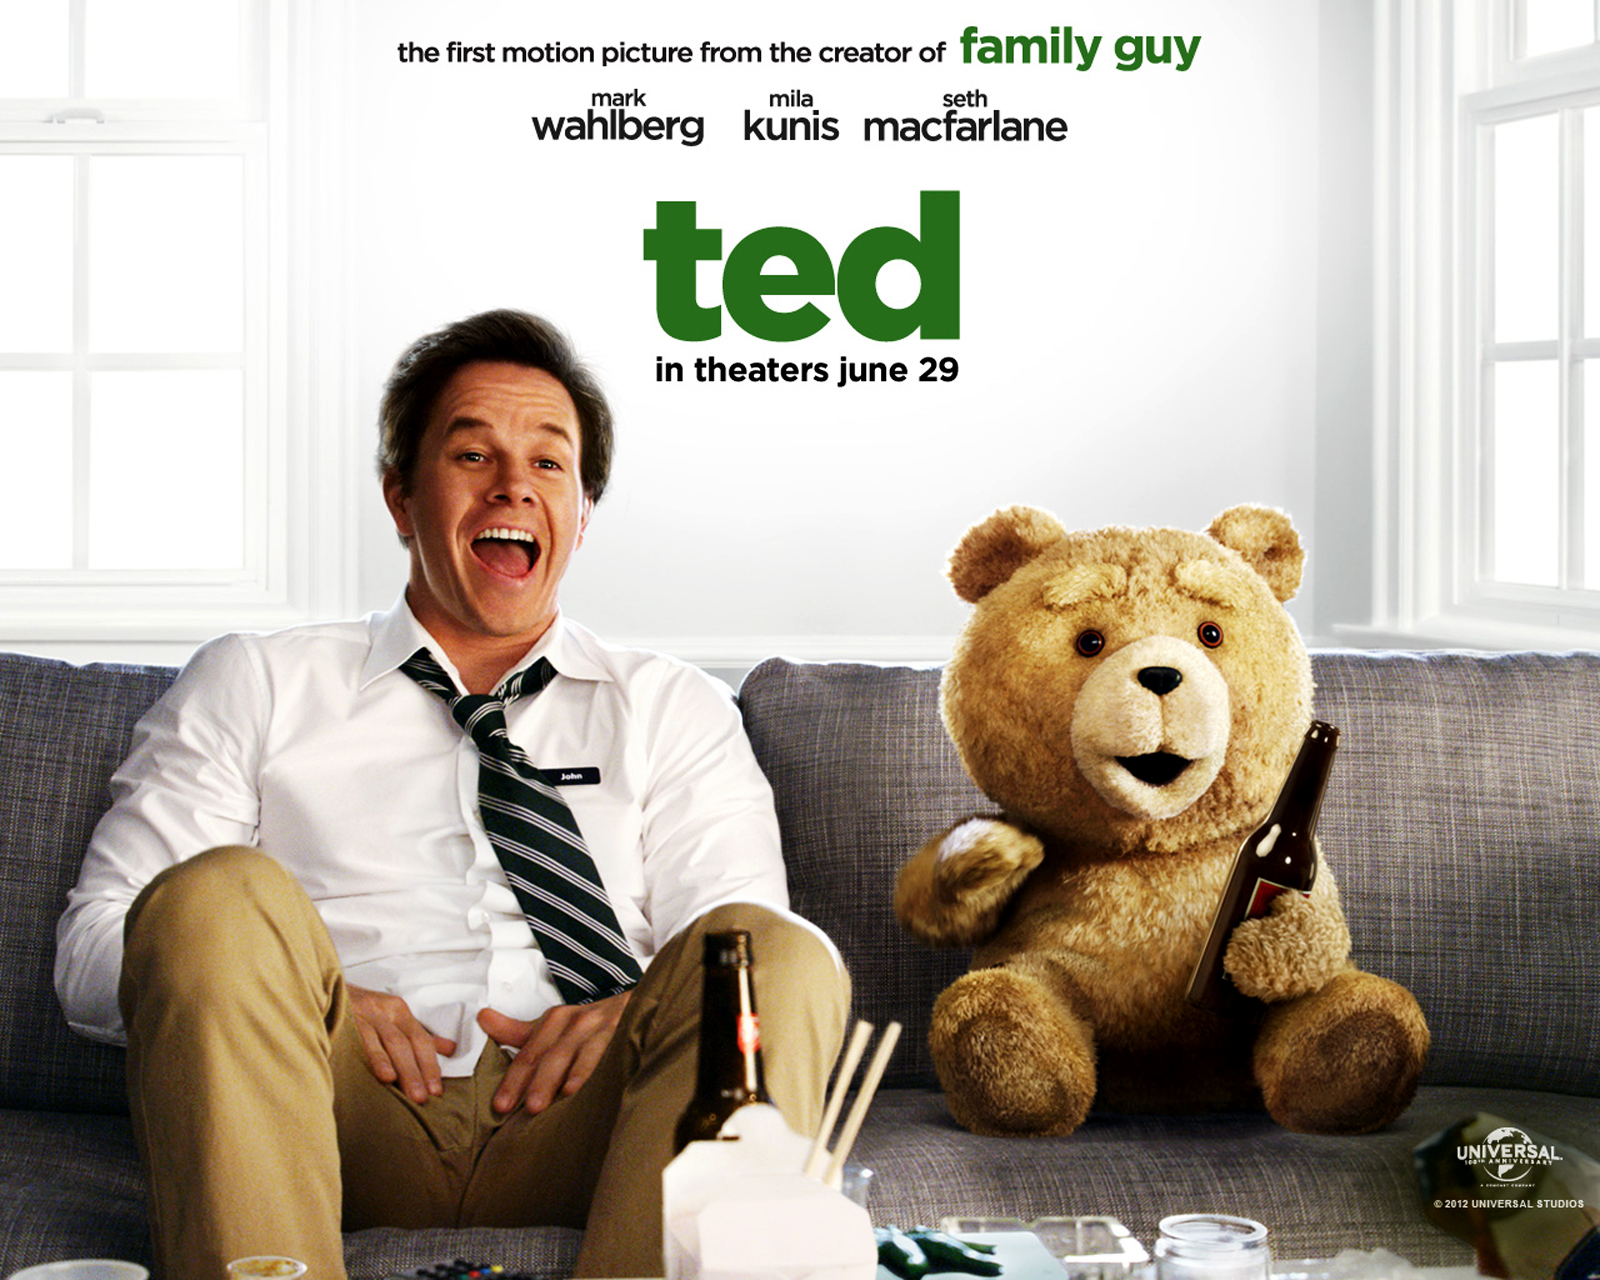 http://3.bp.blogspot.com/-NYAKZkMkmeo/T-wnkt1Eq0I/AAAAAAAACWo/JwkId2tvpuQ/s1600/Mark_Wahlberg_and_Ted_Ted_Movie_HD_Wallpaper-Vvallpaper.Net.jpg